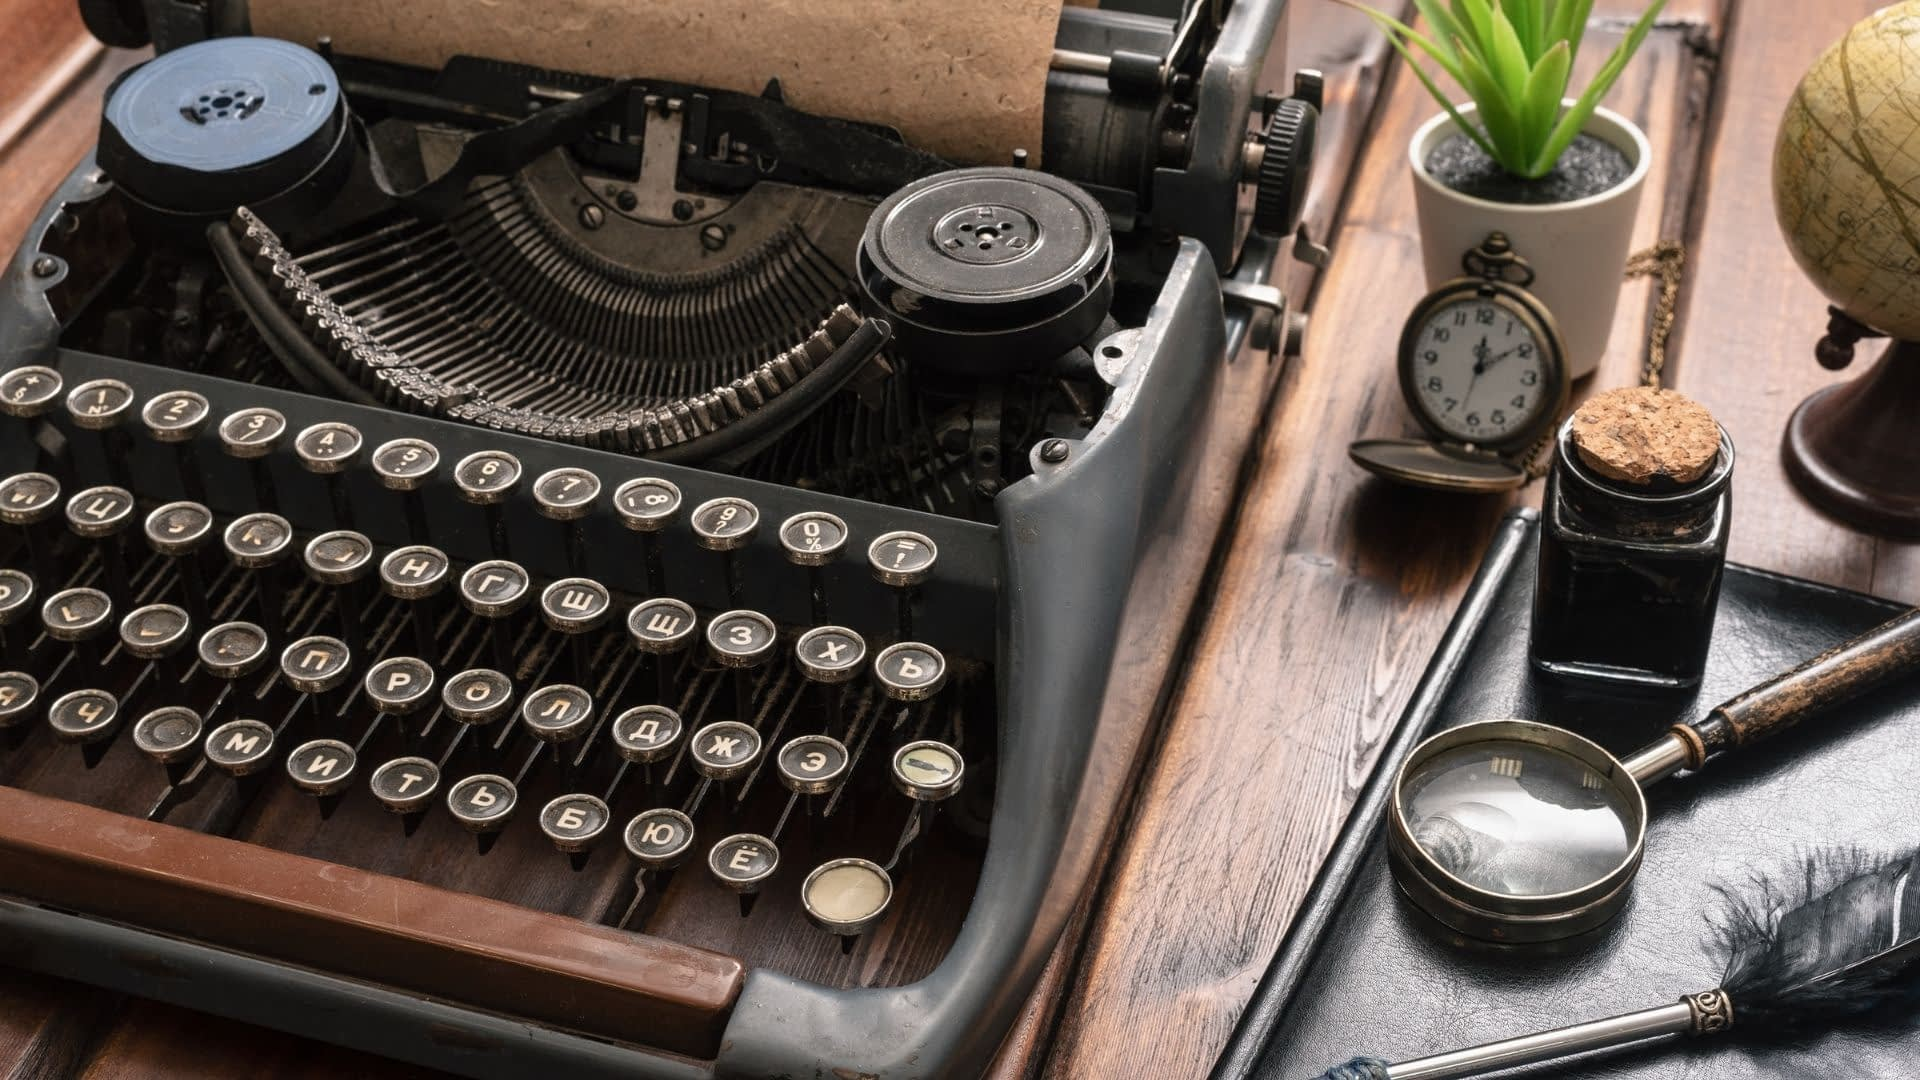 As a freelance writer, there are many niches to choose from, but what niches hold the most potential?